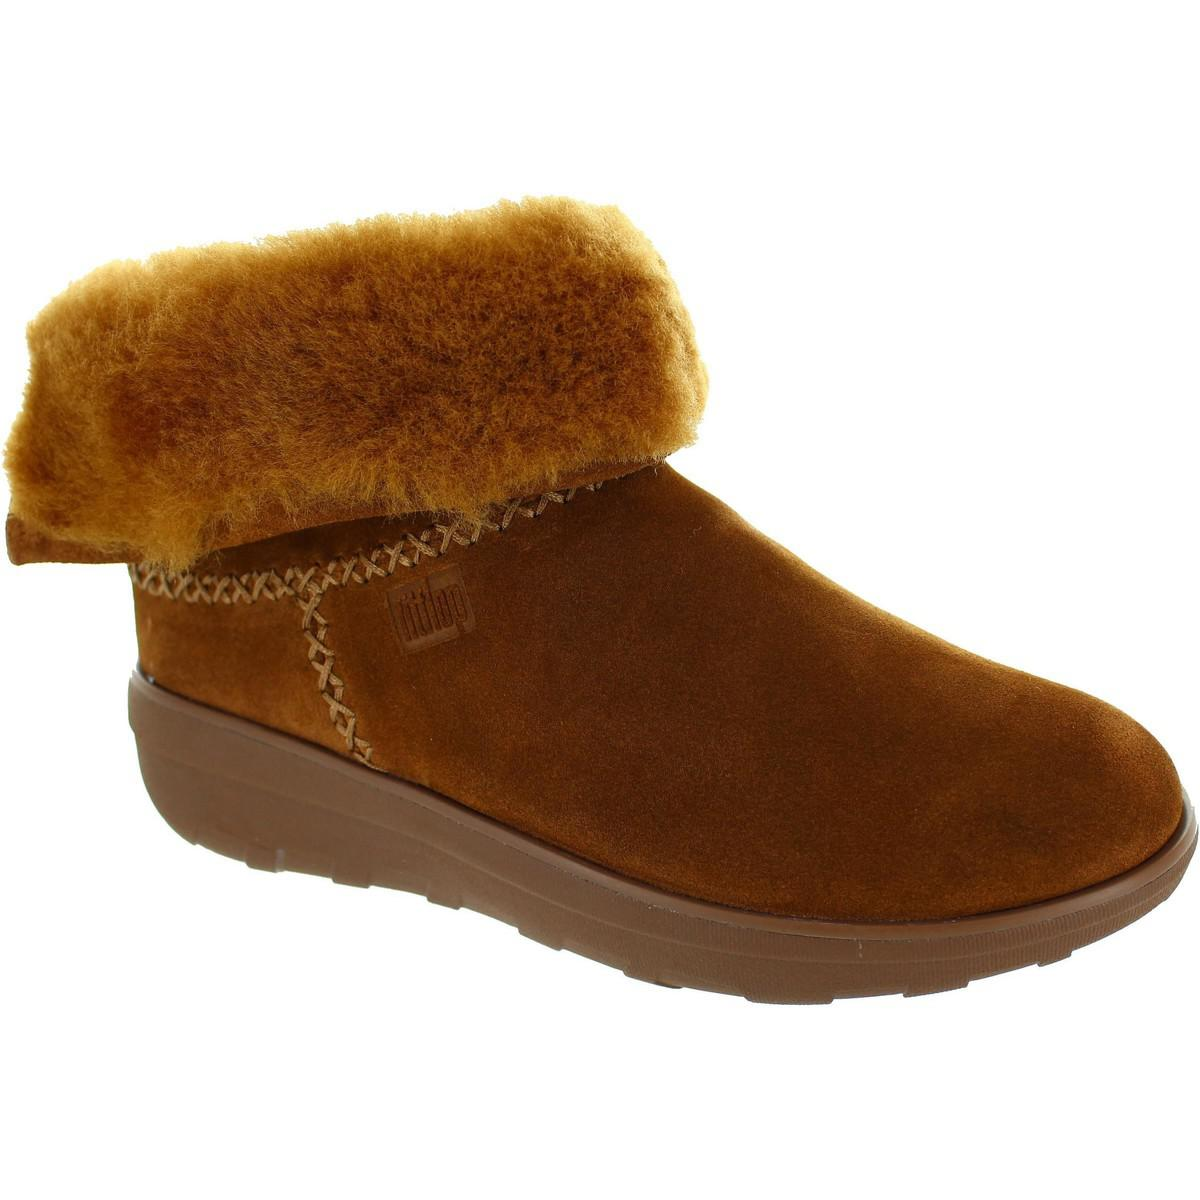 b28f23beb5c1e2 Fitflop Mukluk Shorty 2 Women s Snow Boots In Brown in Brown - Lyst